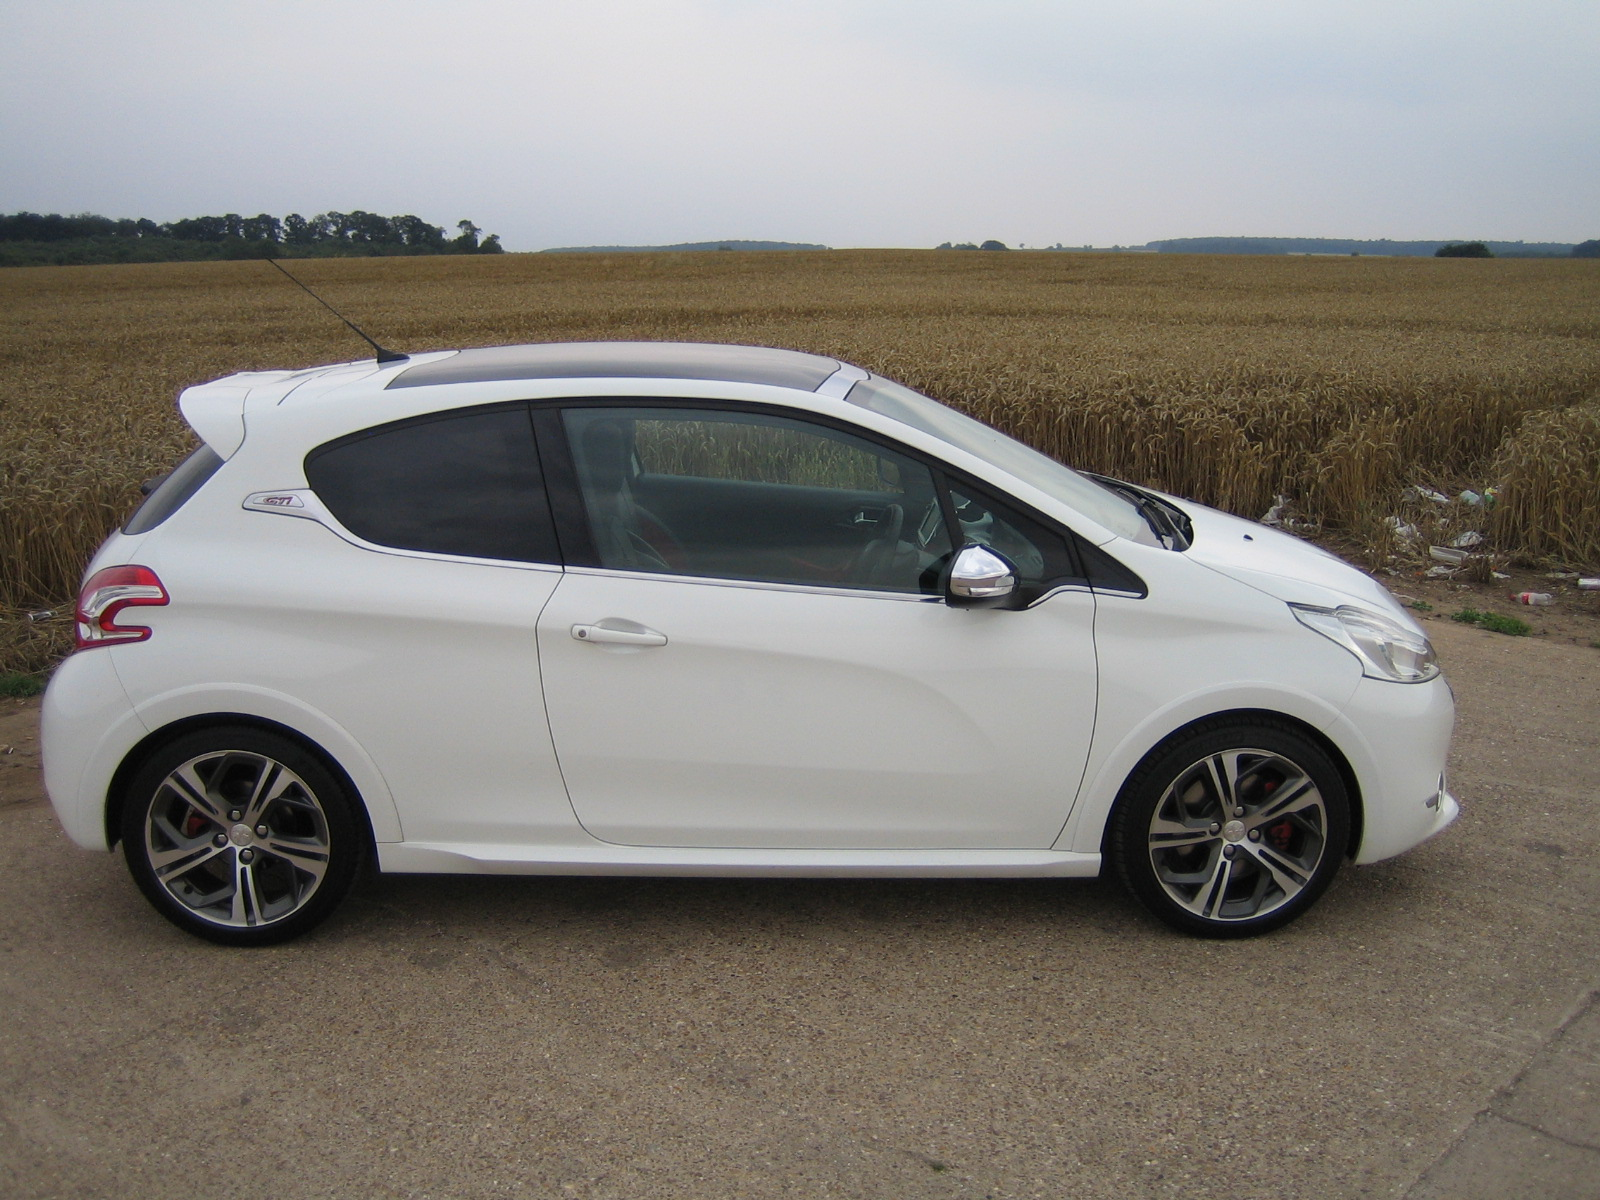 peugeot 208 gti 1 6 thp 200 road test shows new hot hatch is best yet. Black Bedroom Furniture Sets. Home Design Ideas